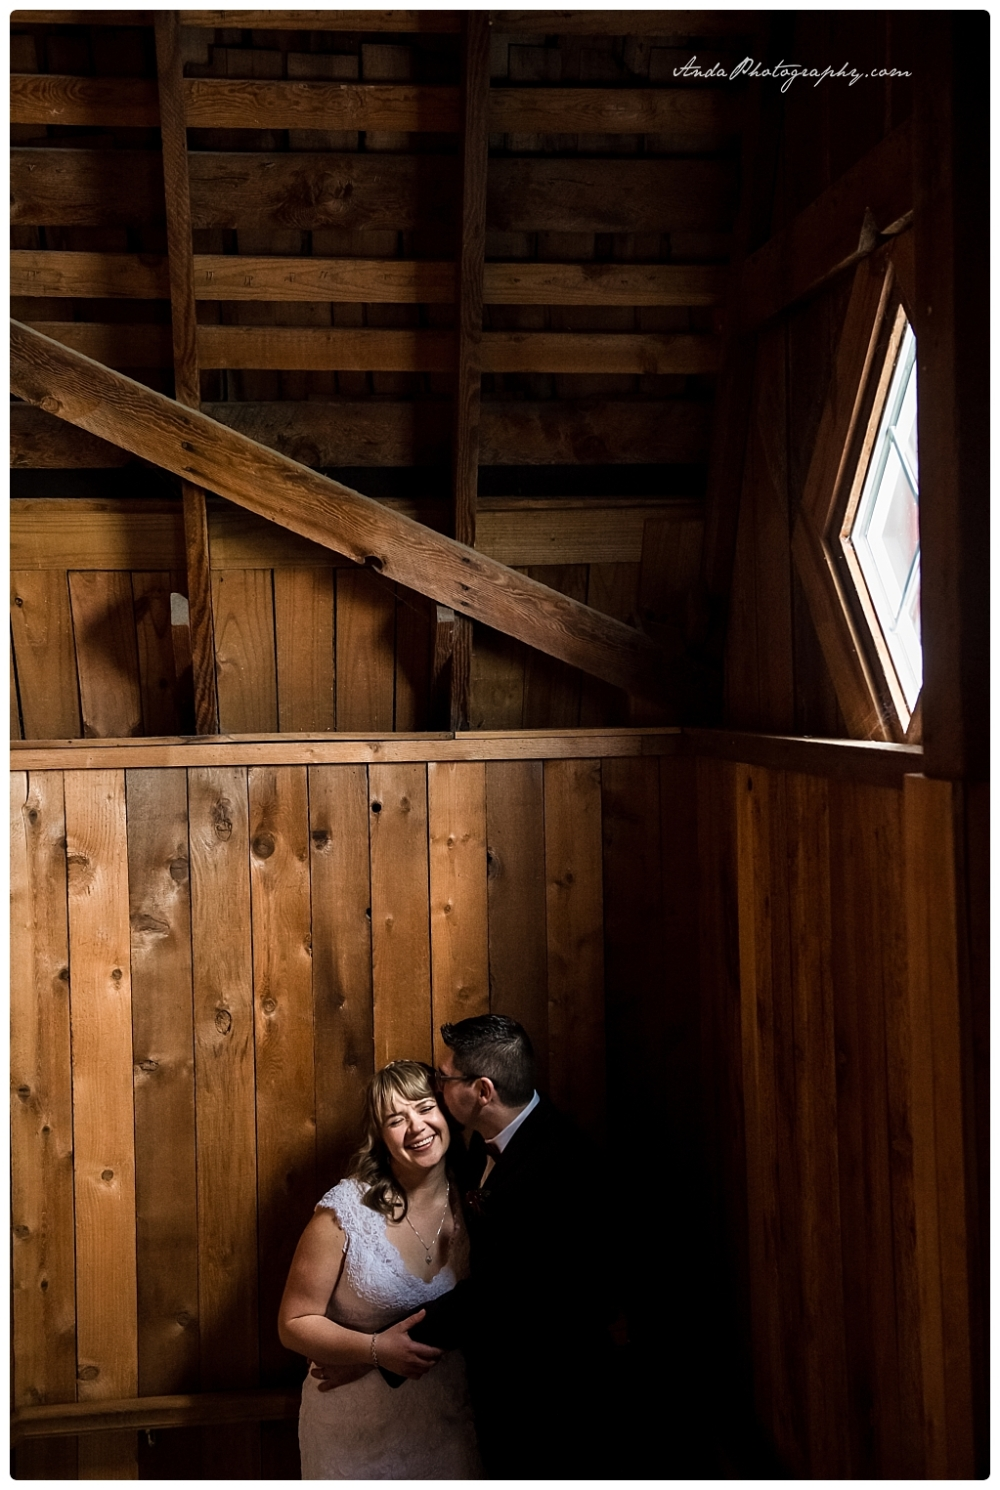 Anda Photography Bellingham Wedding Photographers Seattle Wedding Photographers StilleyBrook Farms Wedding Lifestyle Wedding Photography_0040.jpg